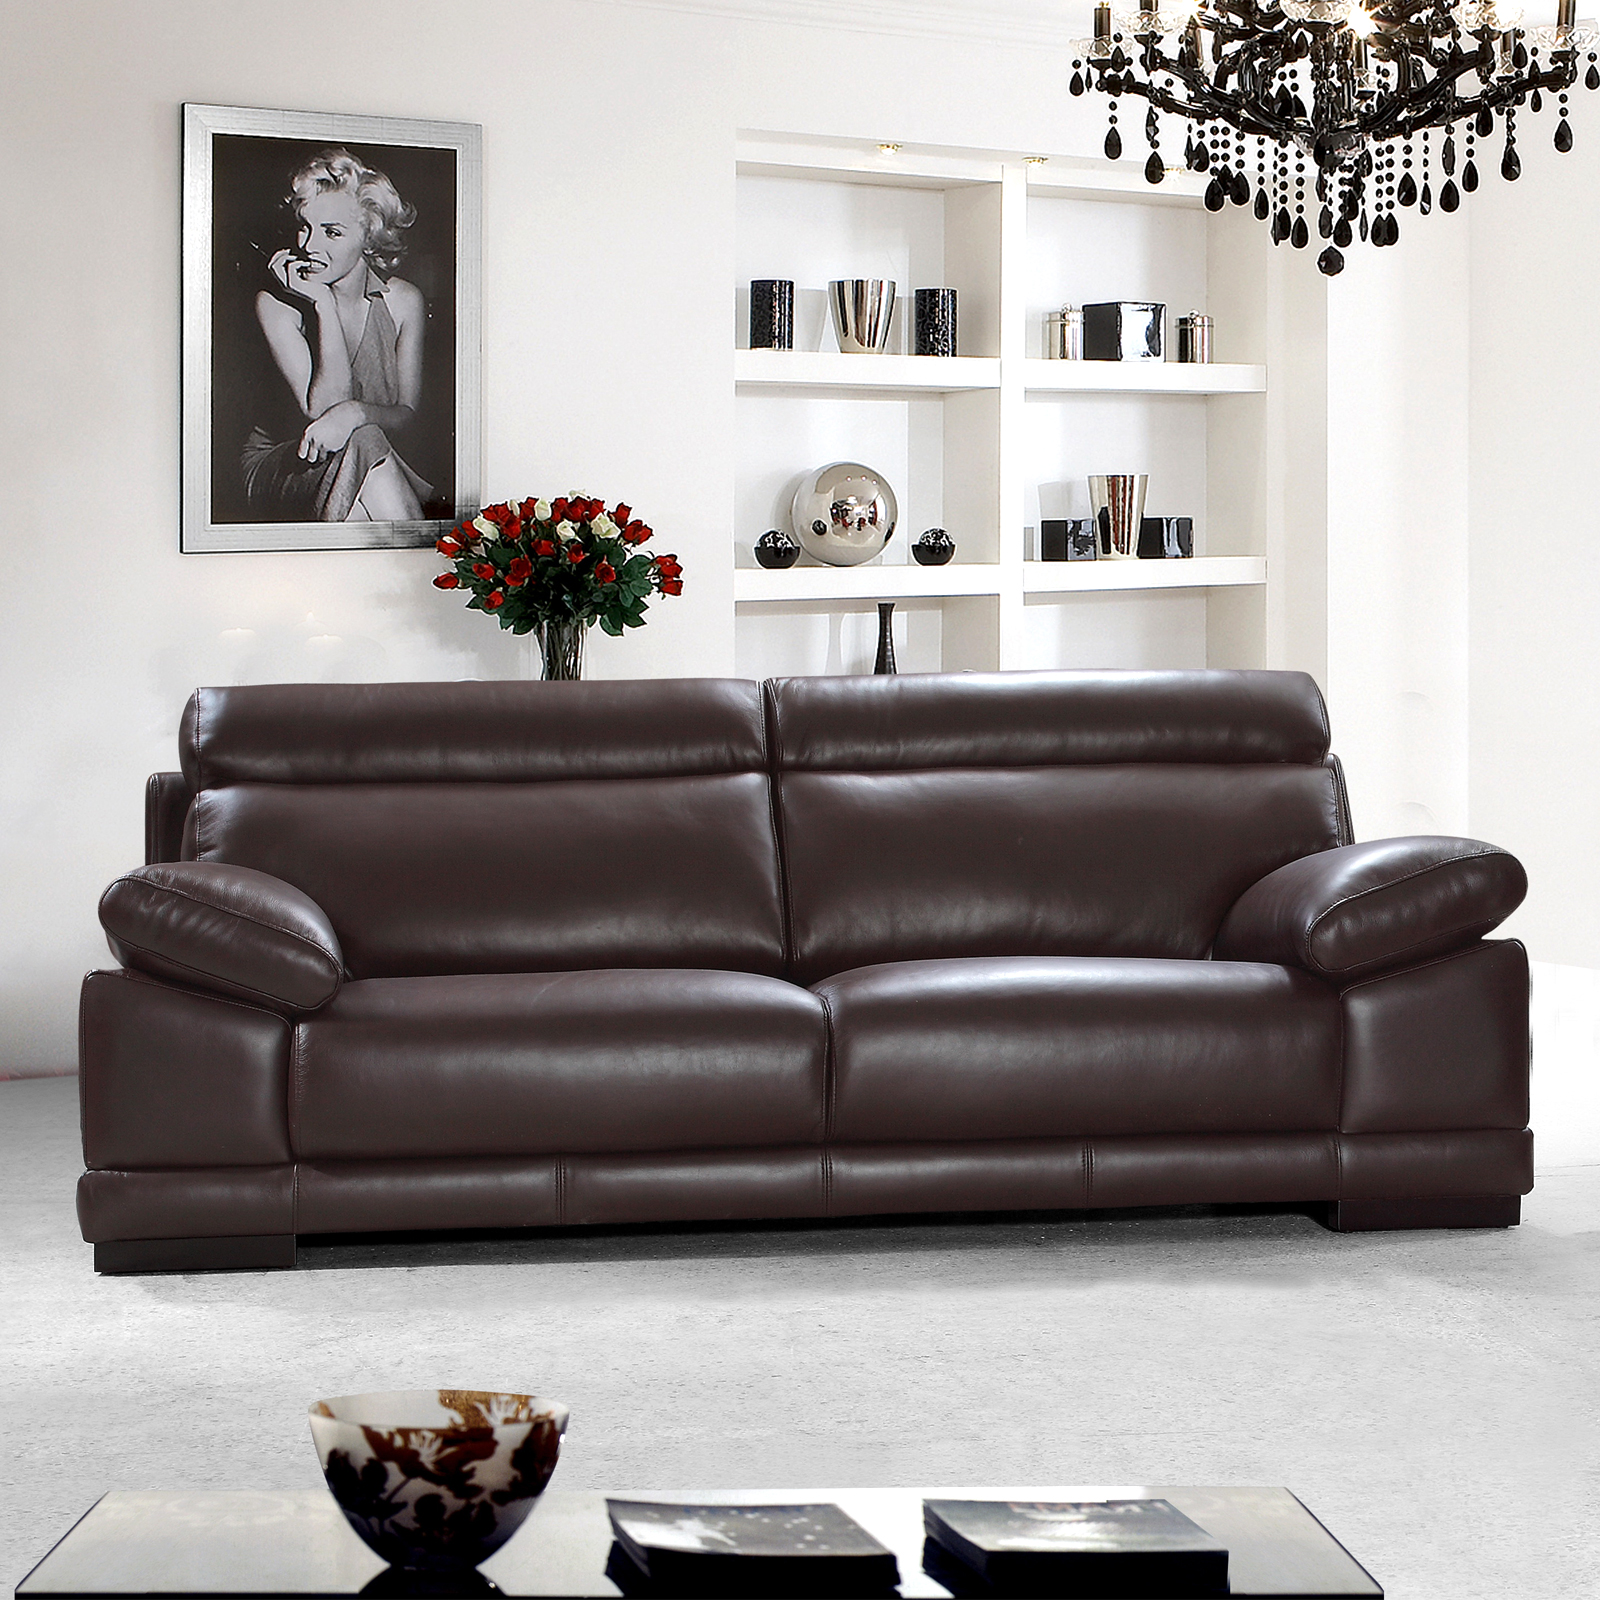 Chesterfield In Black Leather Sofa Set China Import Leather Sofa - Buy  Cheap Chesterfield Sofa,Chesterfield Corner Leather Sofa,Used Chesterfield  Sofa ...